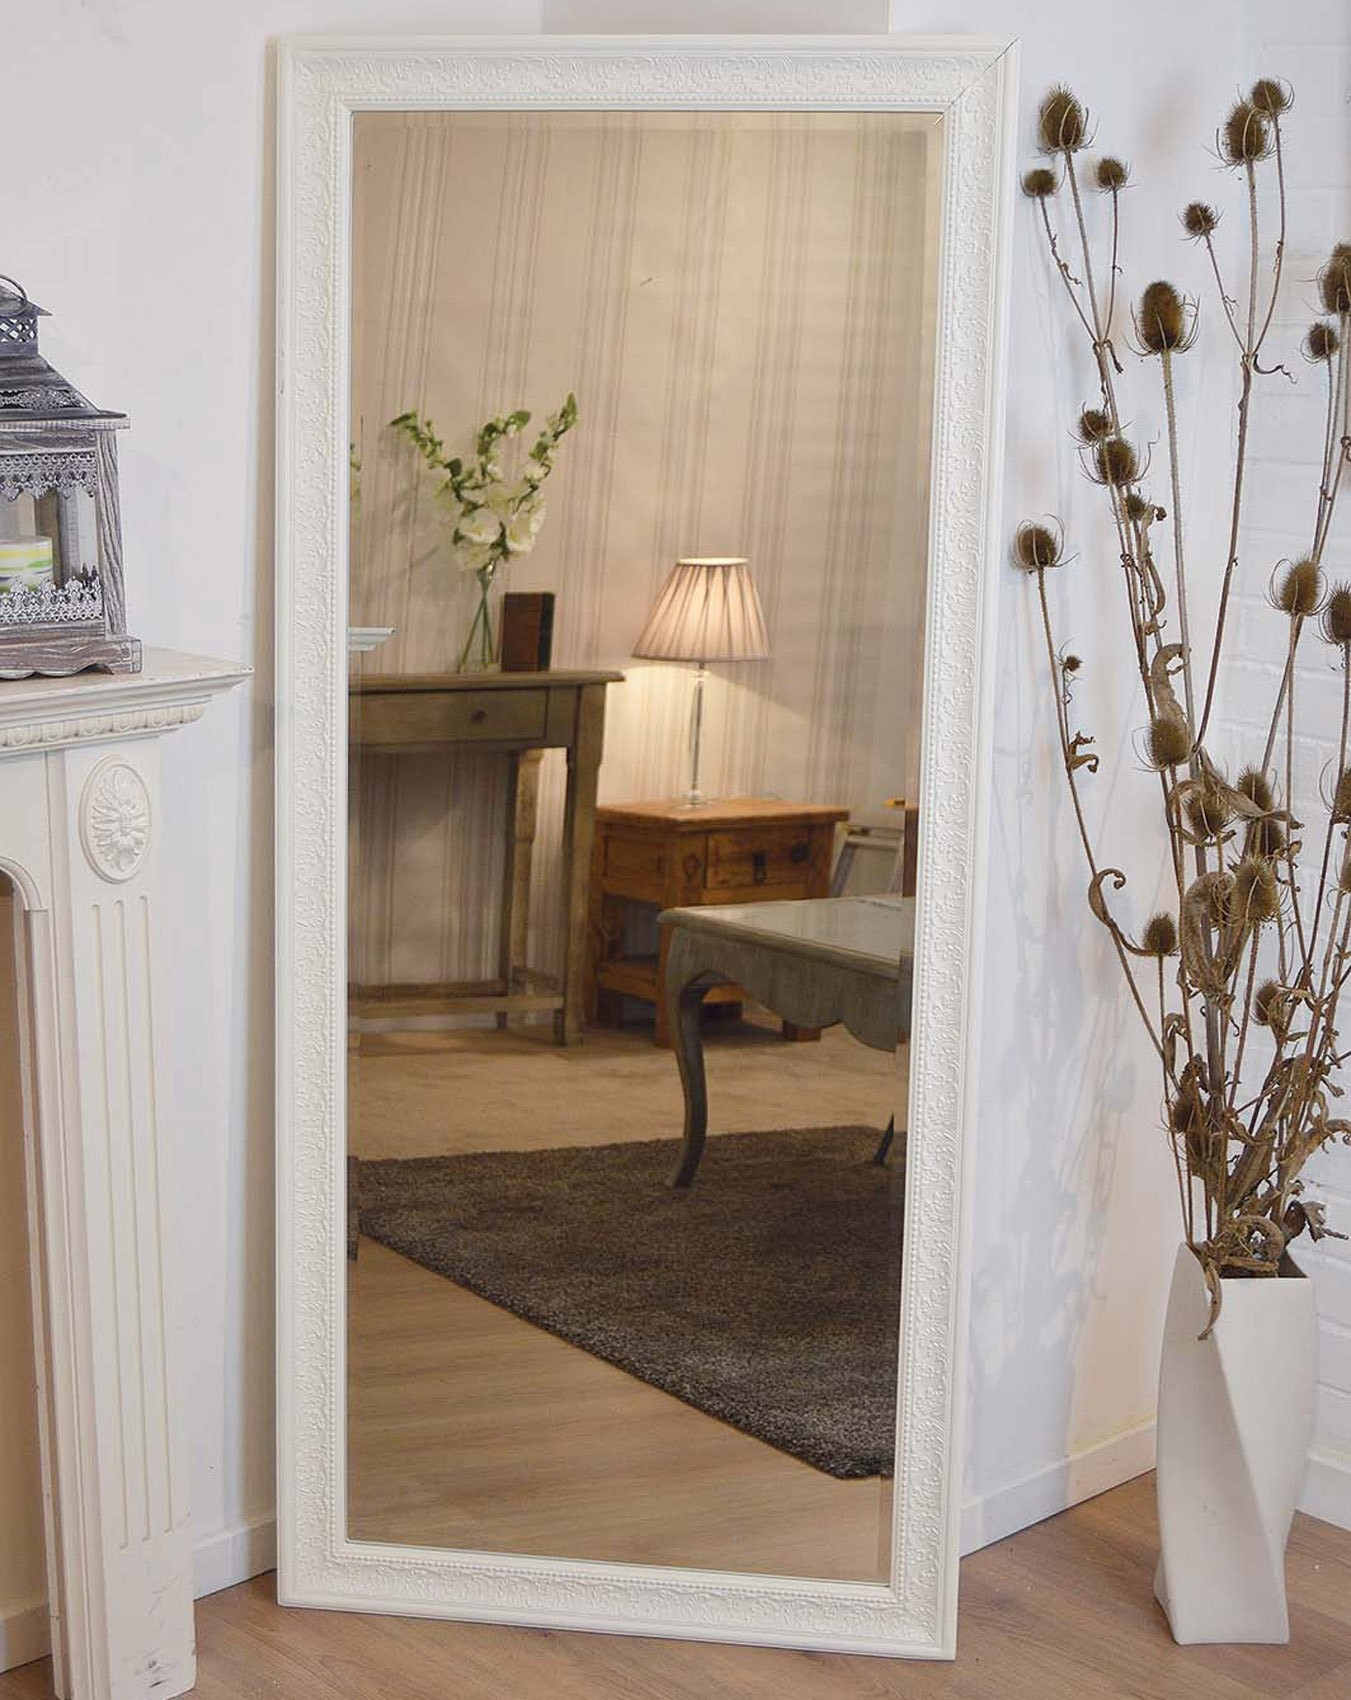 Large Antique Design Full Length Cream Wall Mirror 5ft3 X 2ft5 Inside Large Cream Mirror (View 4 of 15)